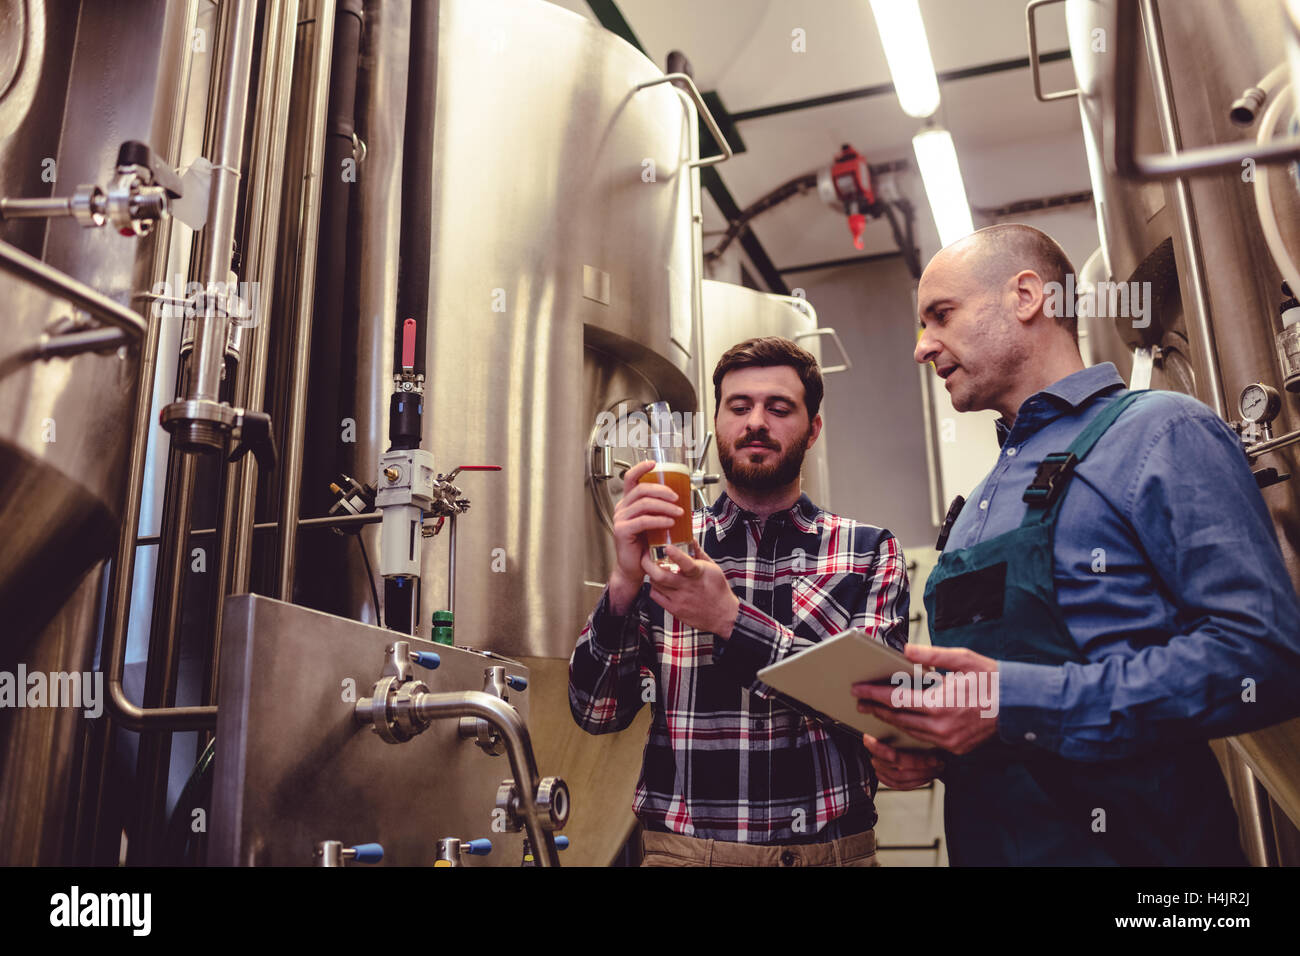 Owner inspecting beer with worker at brewery - Stock Image